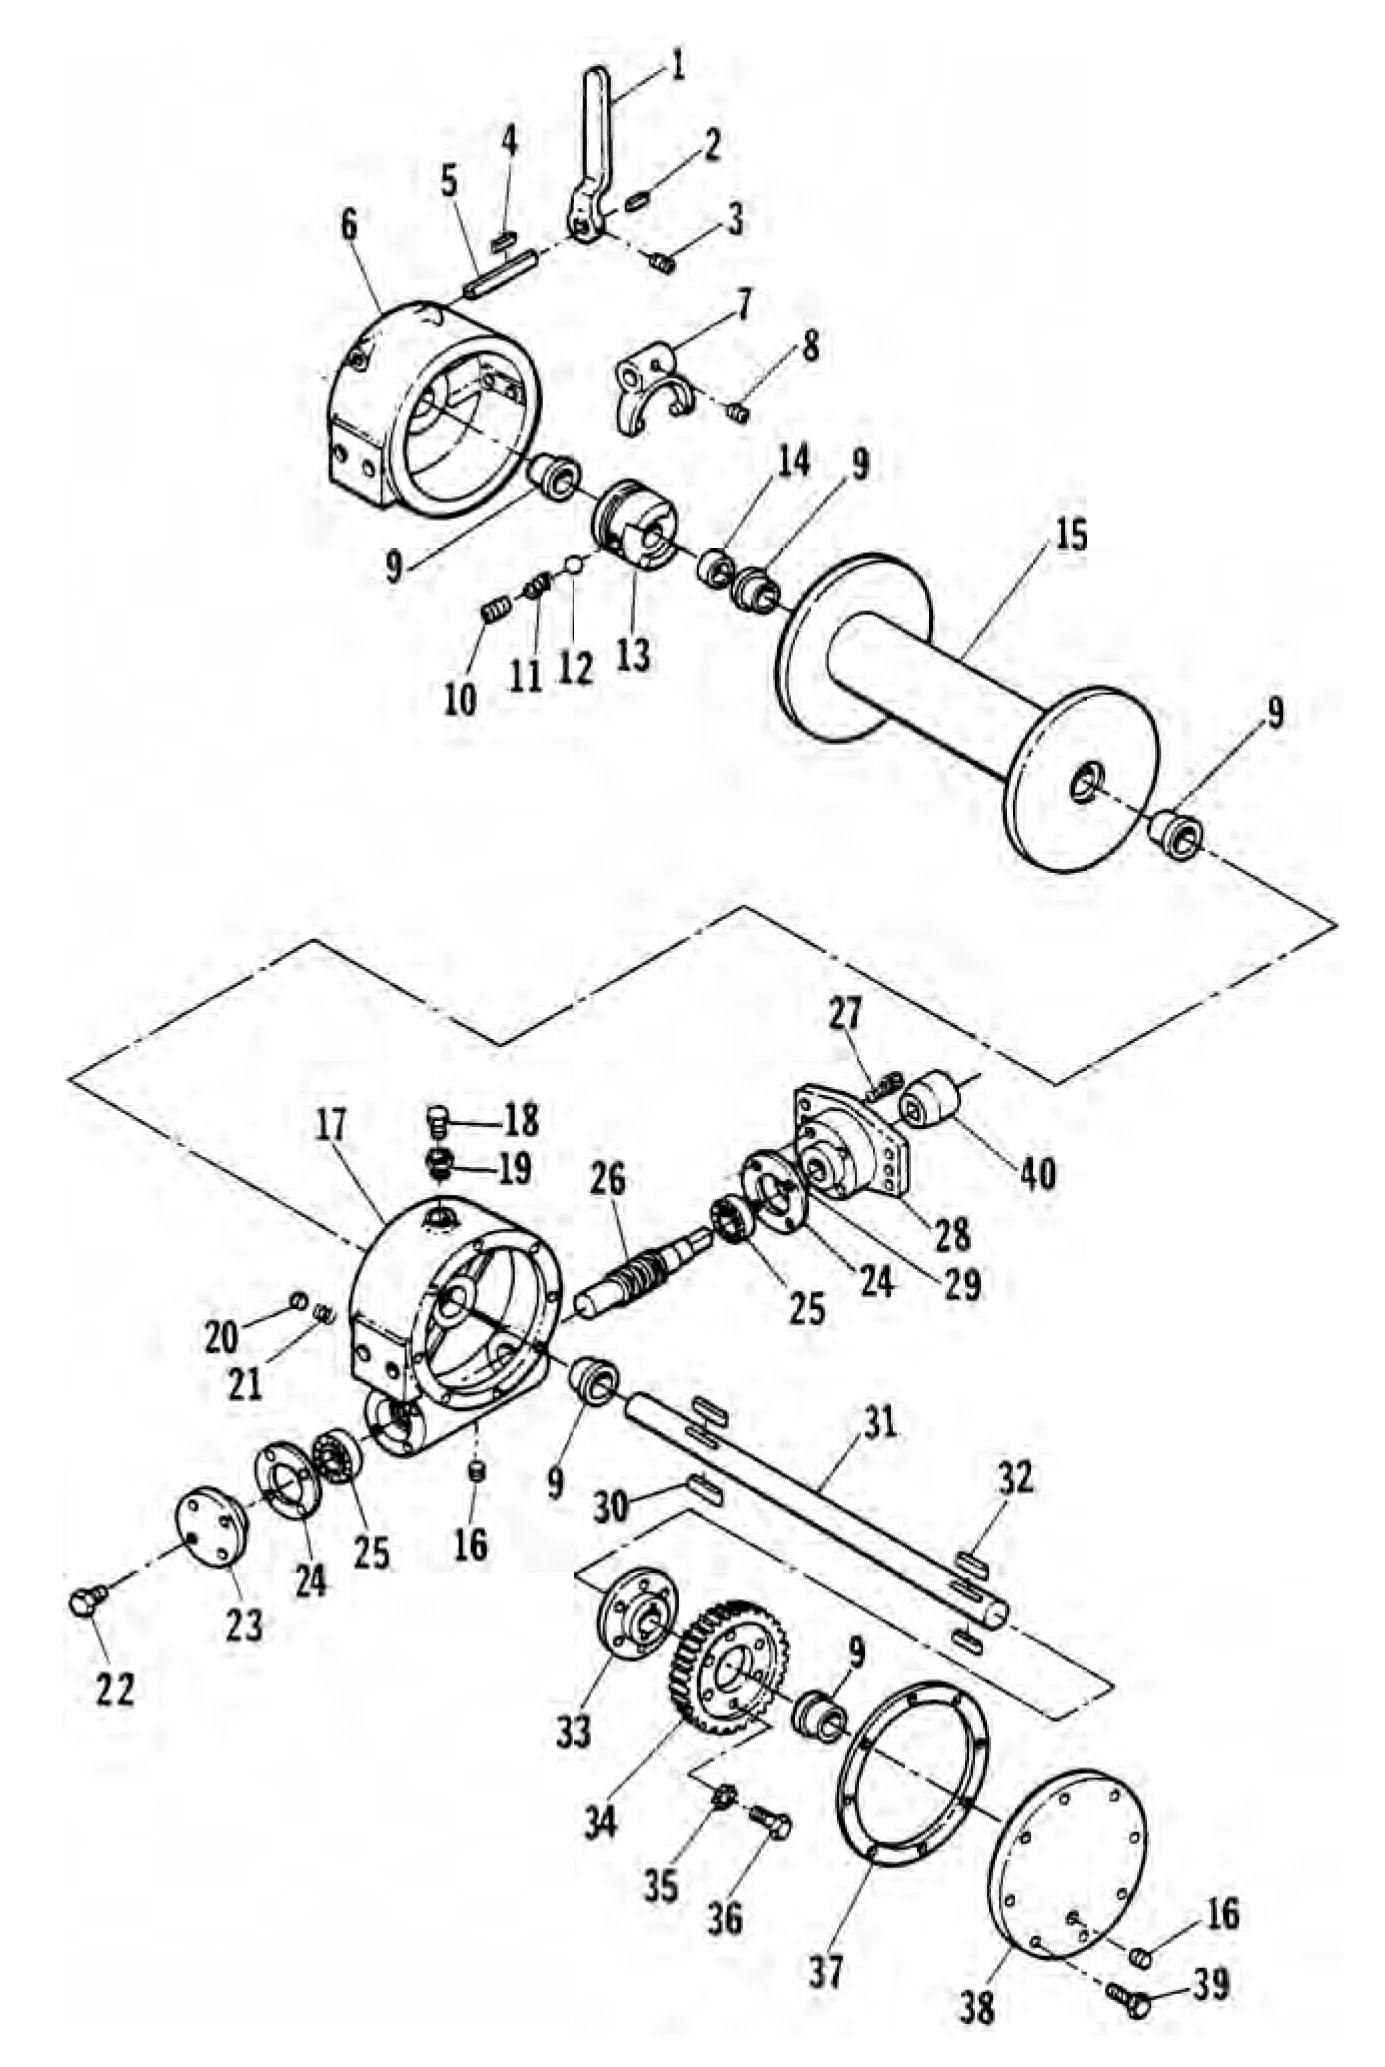 small resolution of ramsey hydraulic winch parts diagram wiring library ramsey winch schematics 712 hydraulic winch assembly ramsey hydraulic